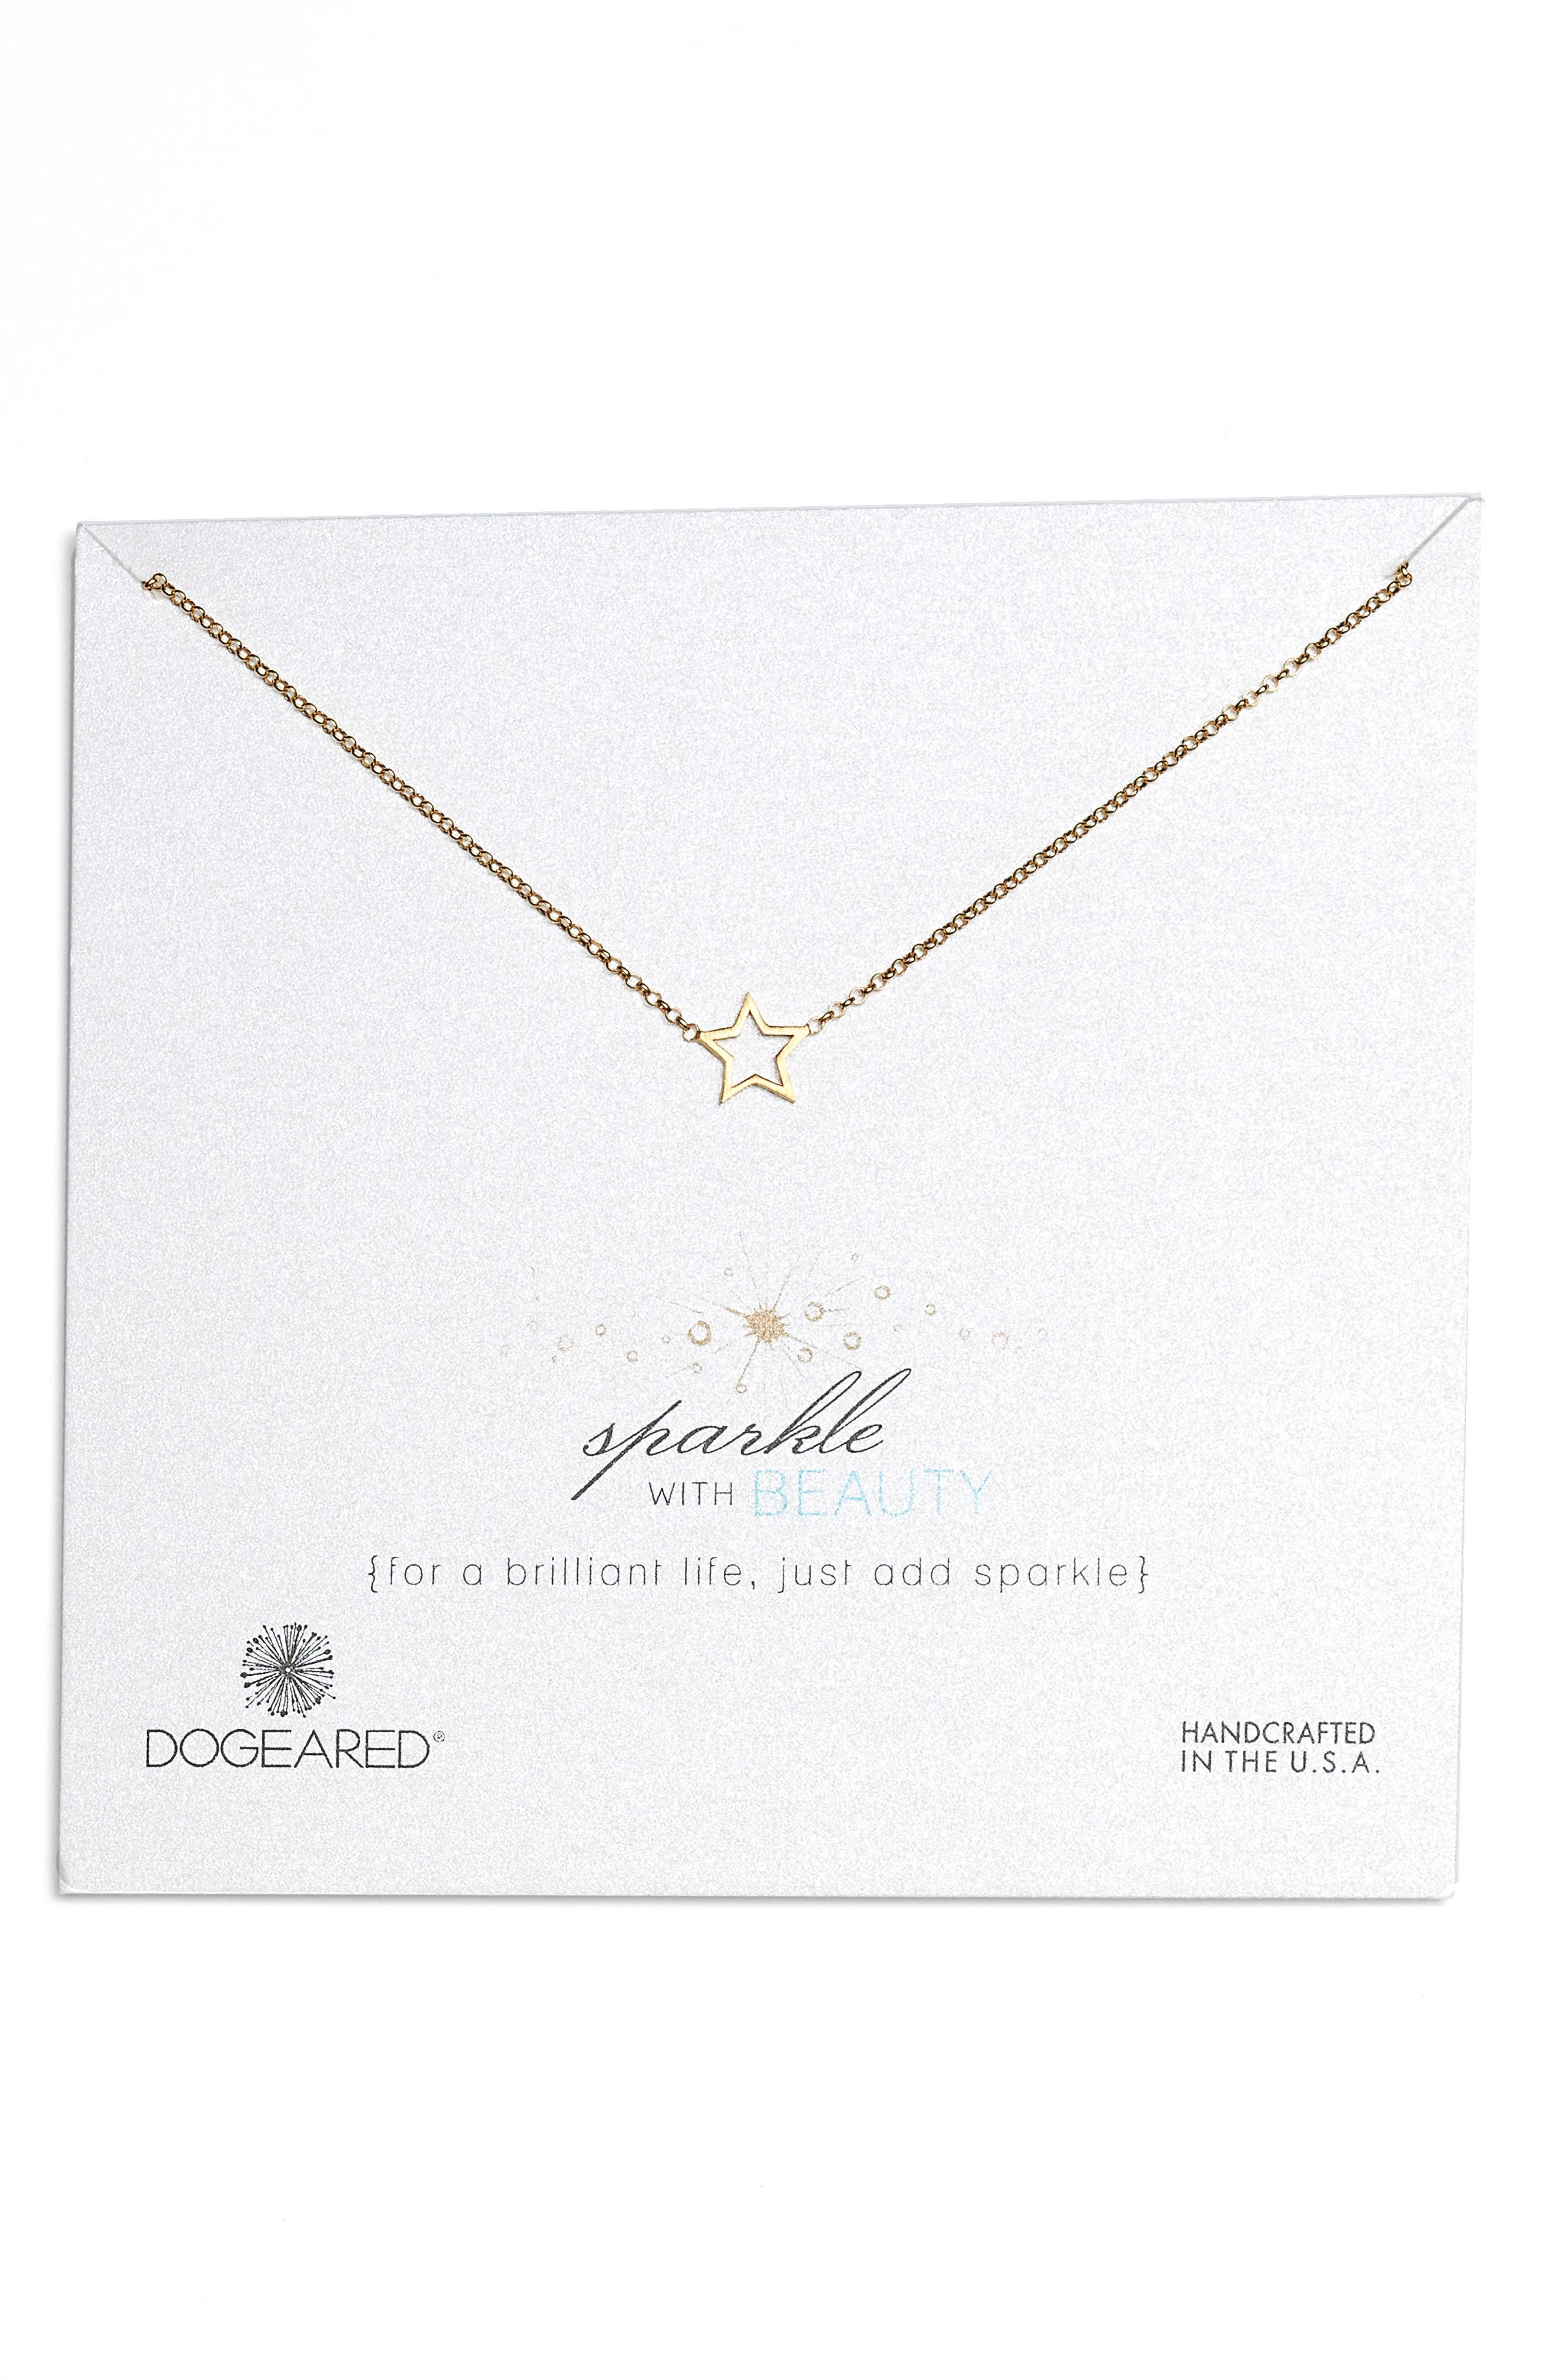 Sparkle with Beauty Necklace,                         Main,                         color, Gold